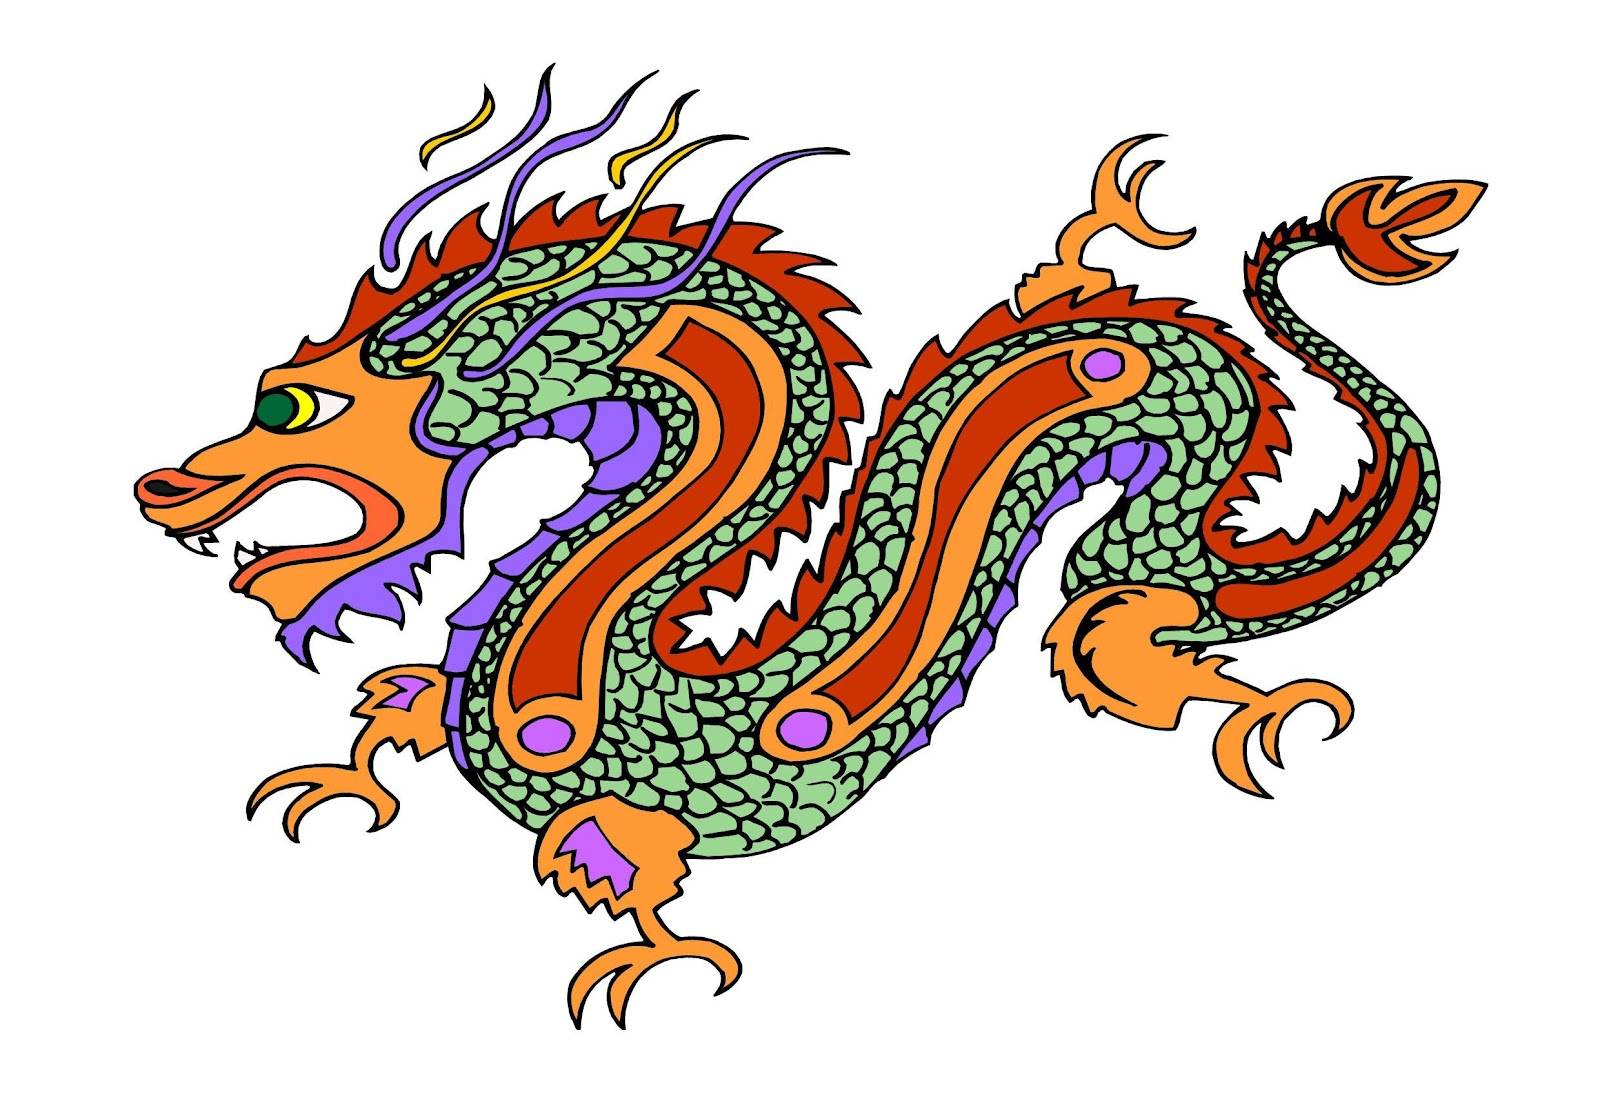 Ukraineb2b business in ukraine year of the dragon one of the new year came and thus came into its own black water dragon who will rule 2012 the symbol of this year is a sign of the most respected in china biocorpaavc Image collections